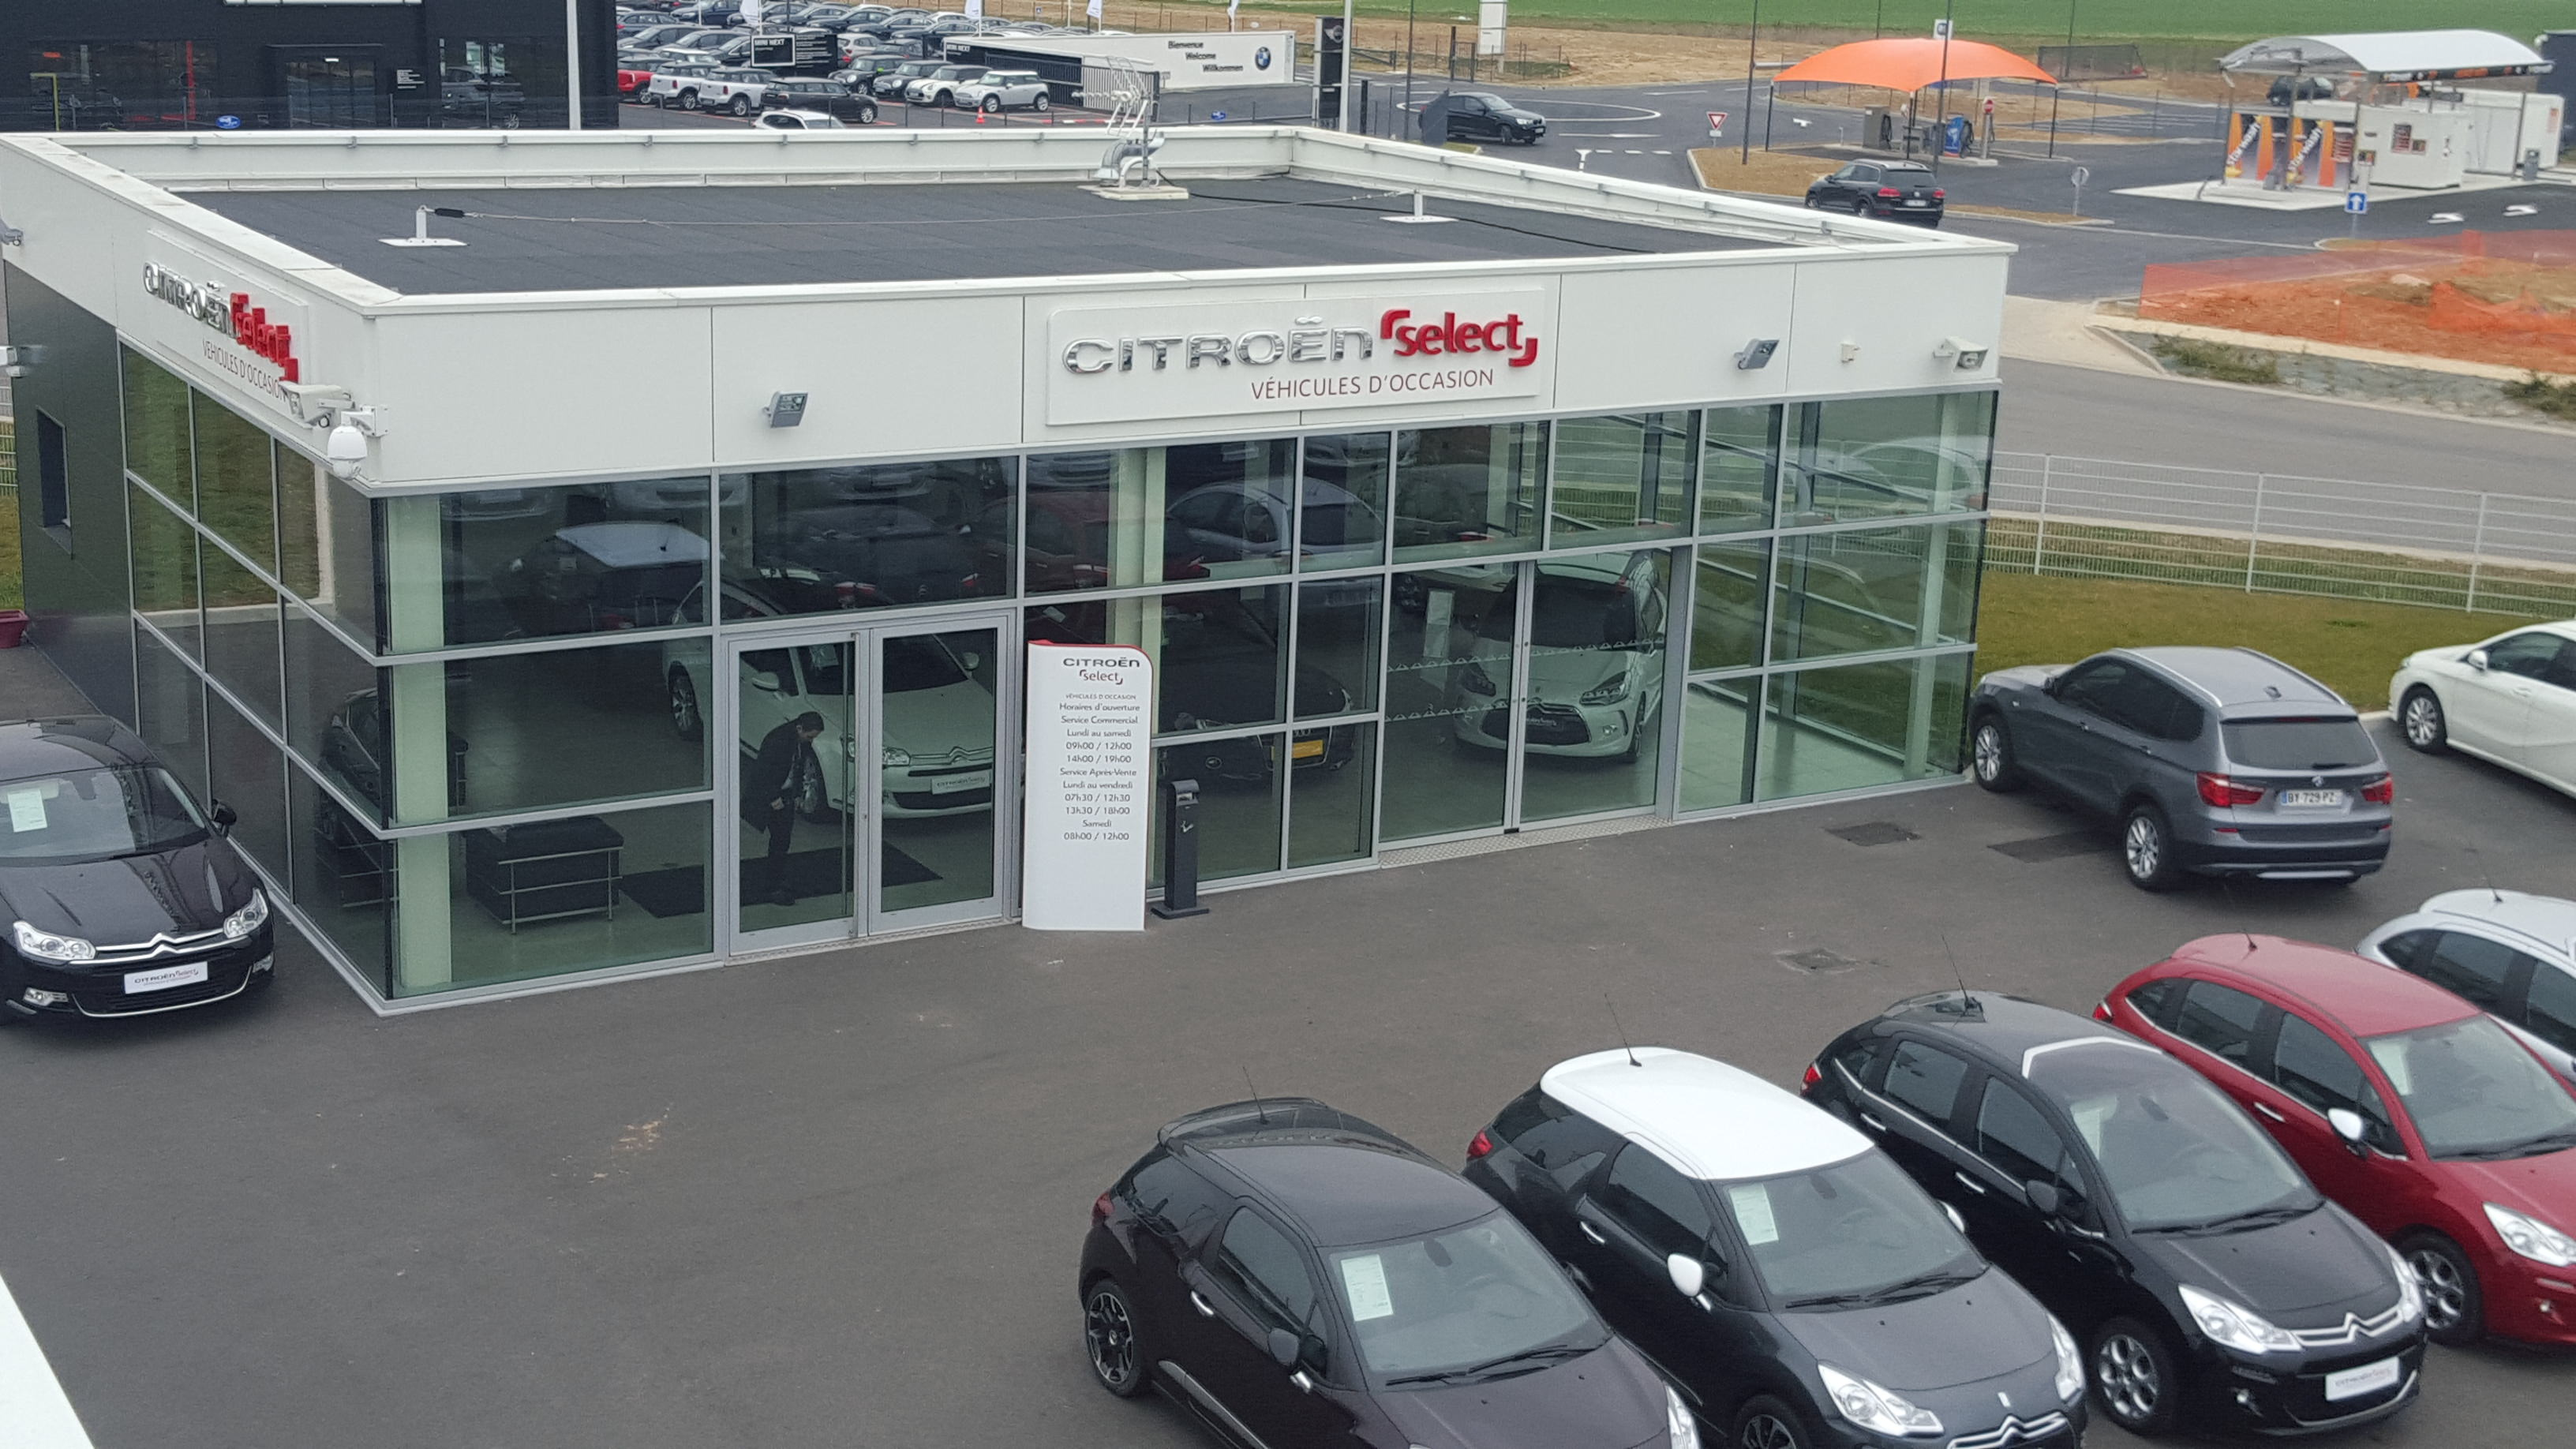 Garage citro n en 2014 2015 agence philippe fichet for Garage citroen crepy en valois